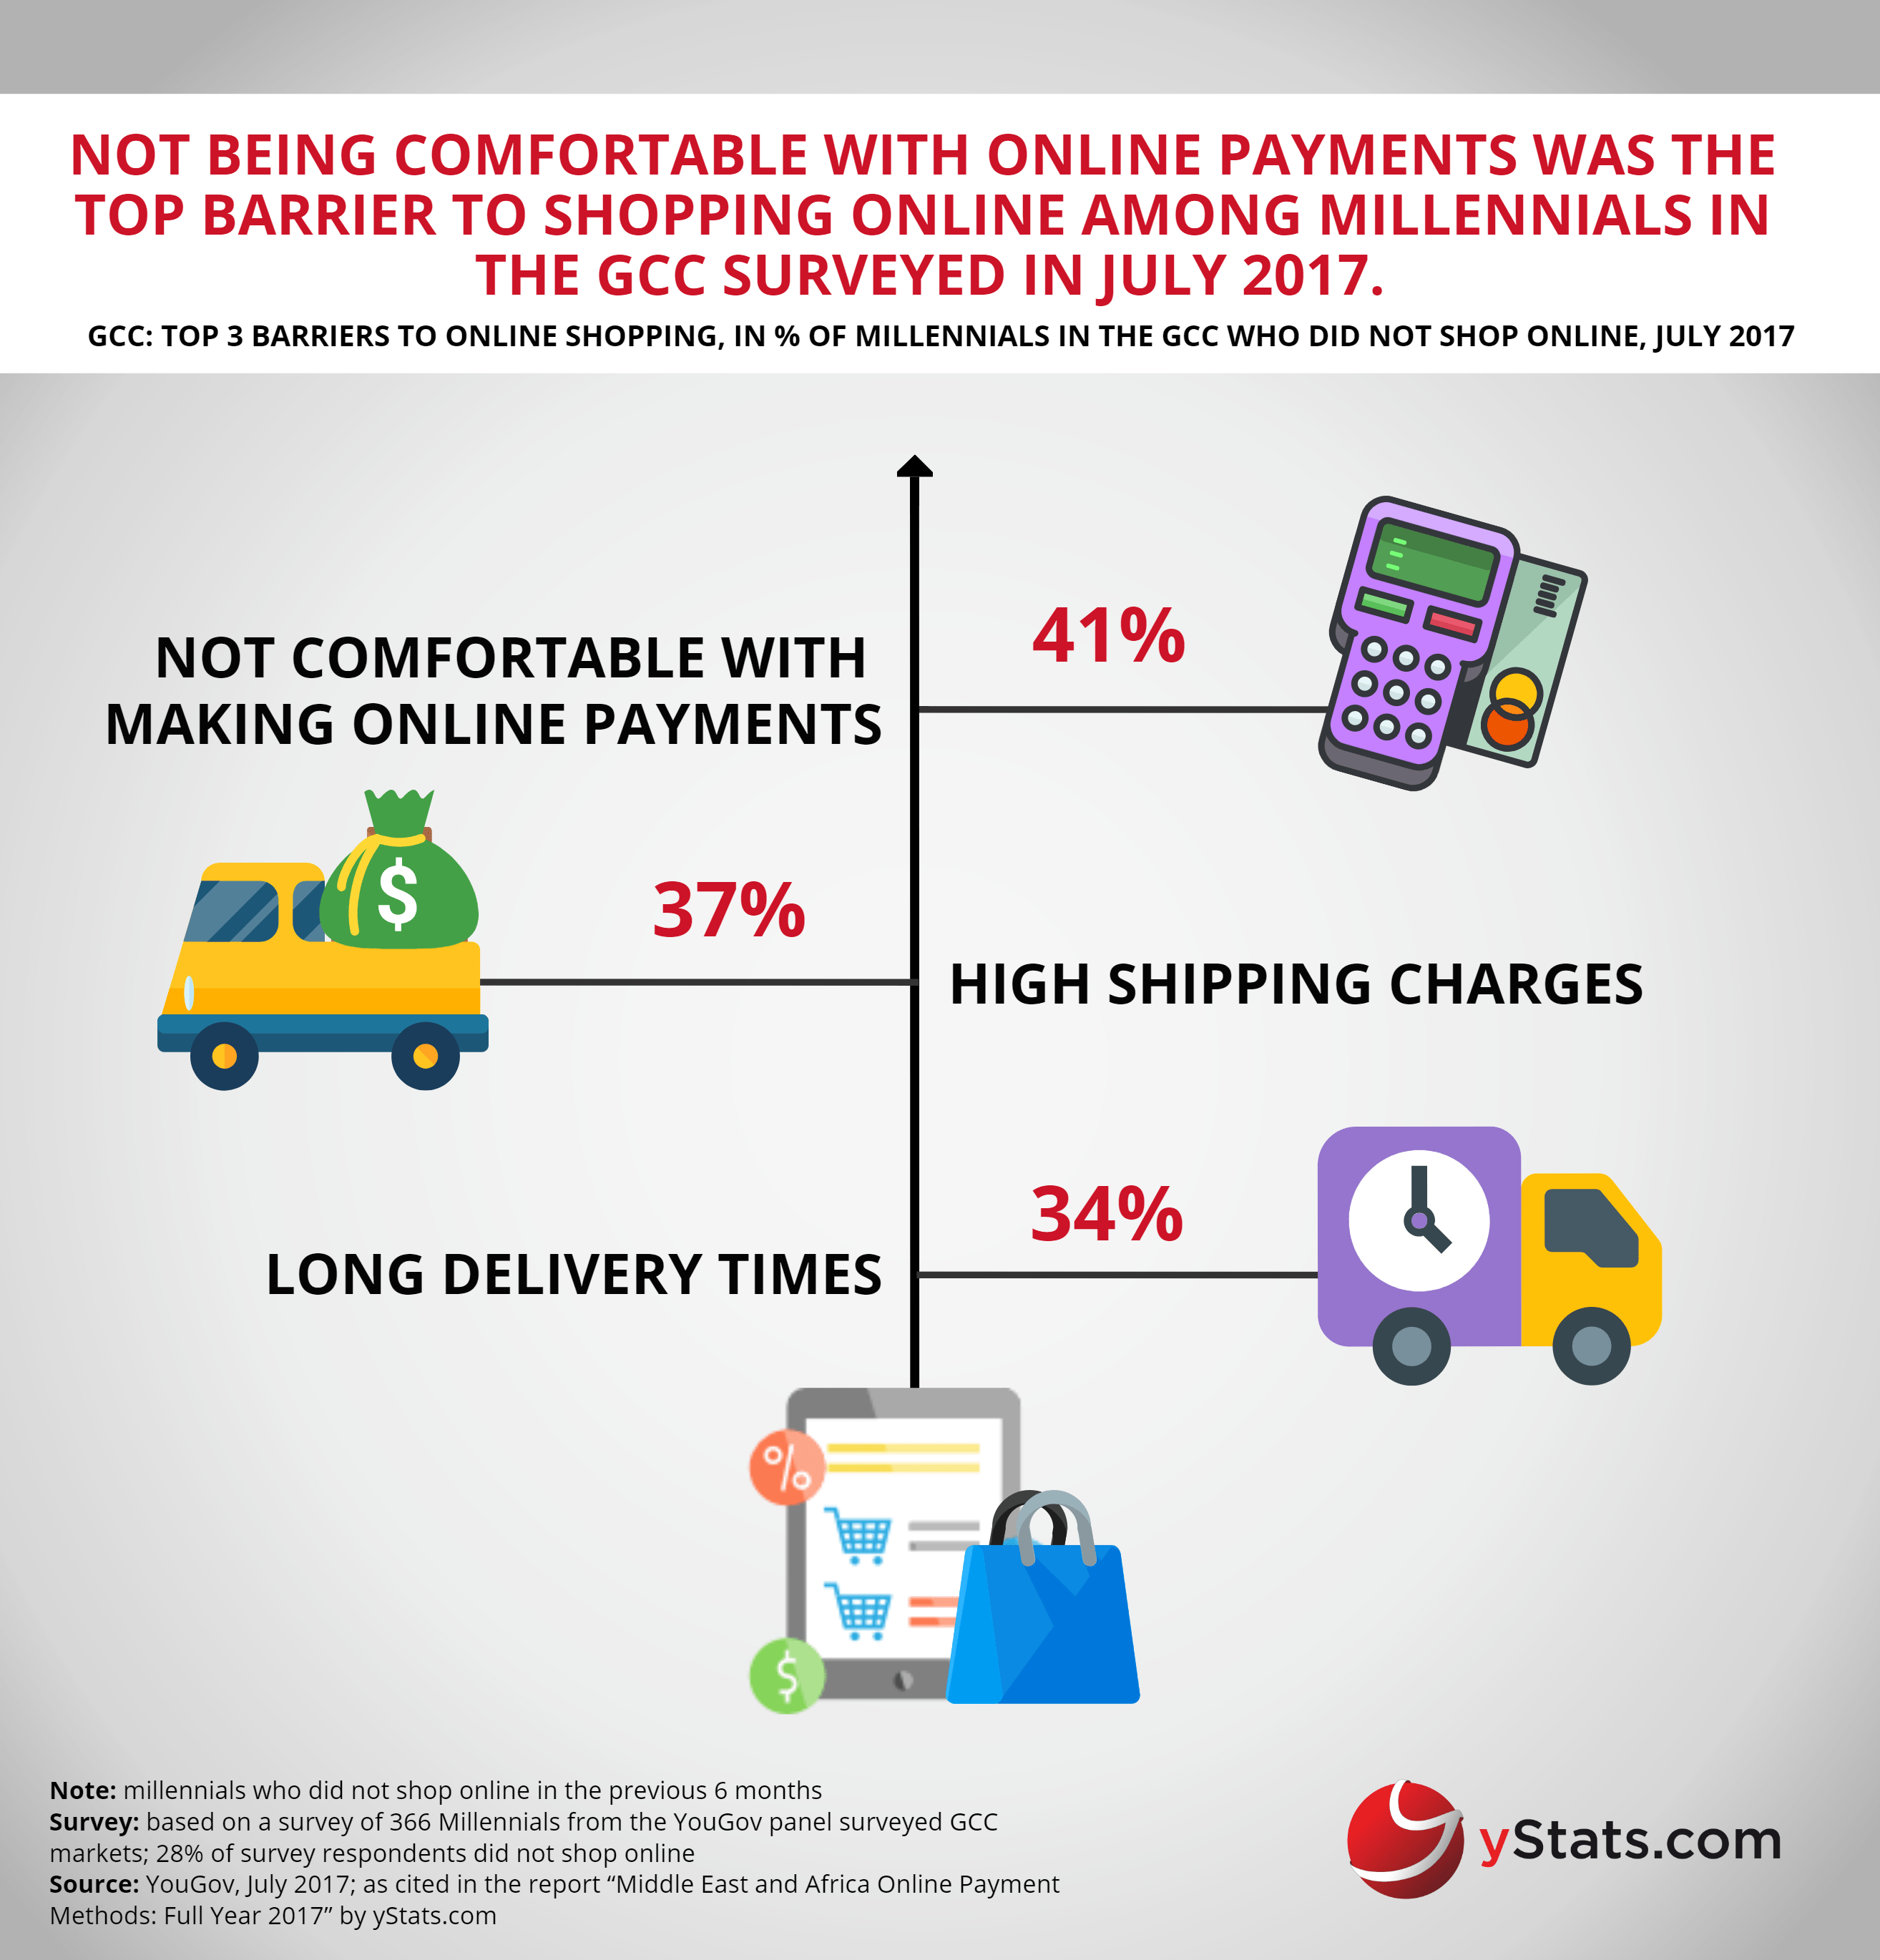 barriers to online shopping in the GCC